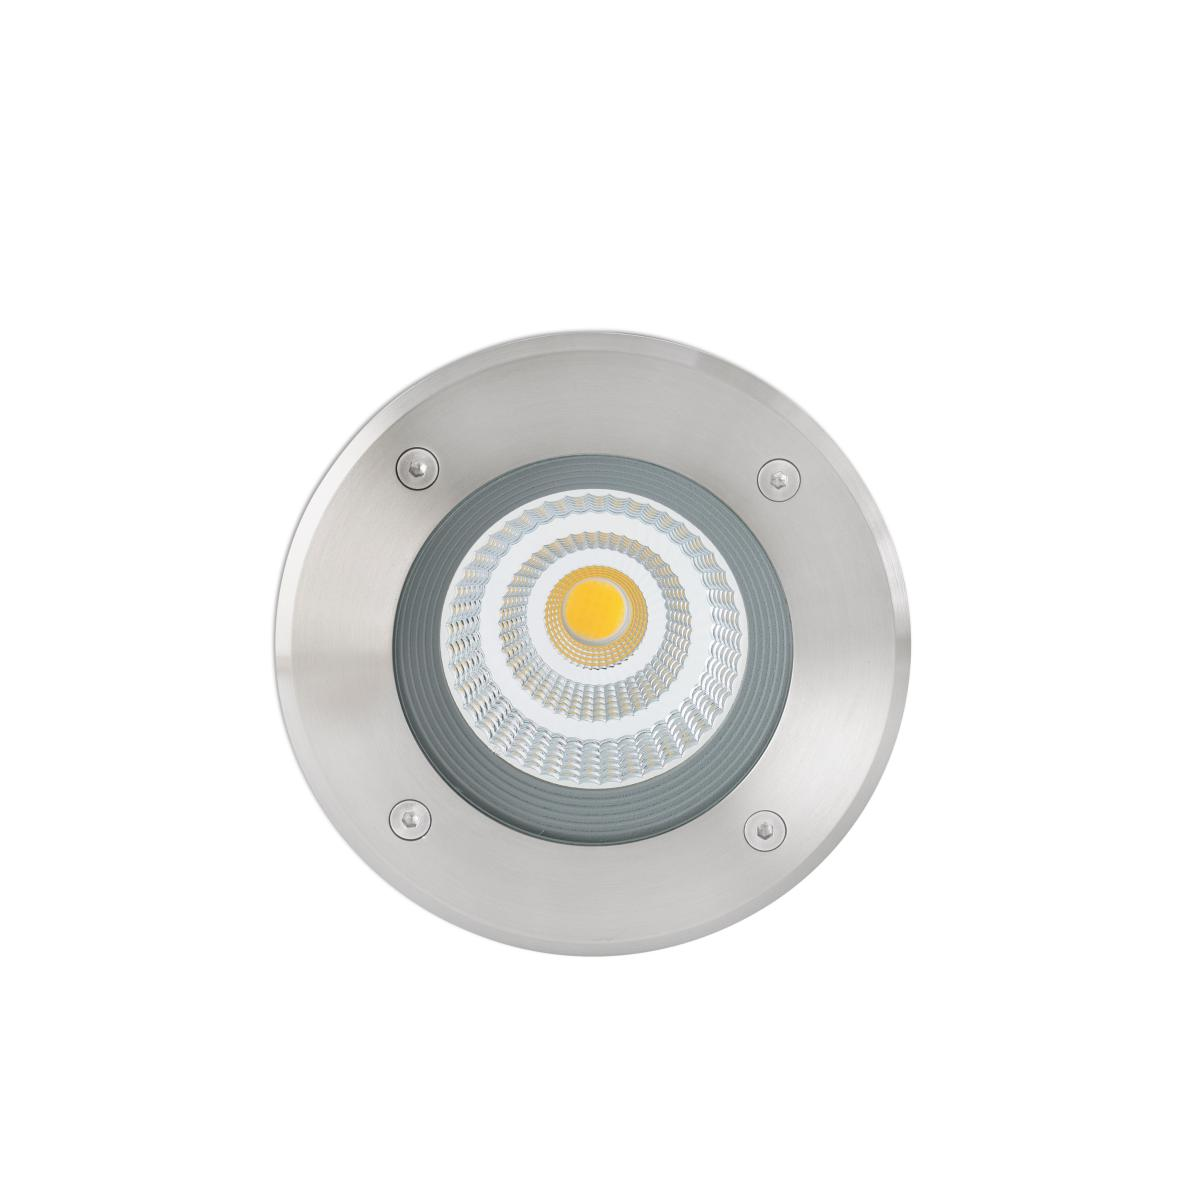 Projecteur Led Exterieur Ip67 Spot Encastrable Exterieur Led Ip67 12w 24 Inox 316 Faro